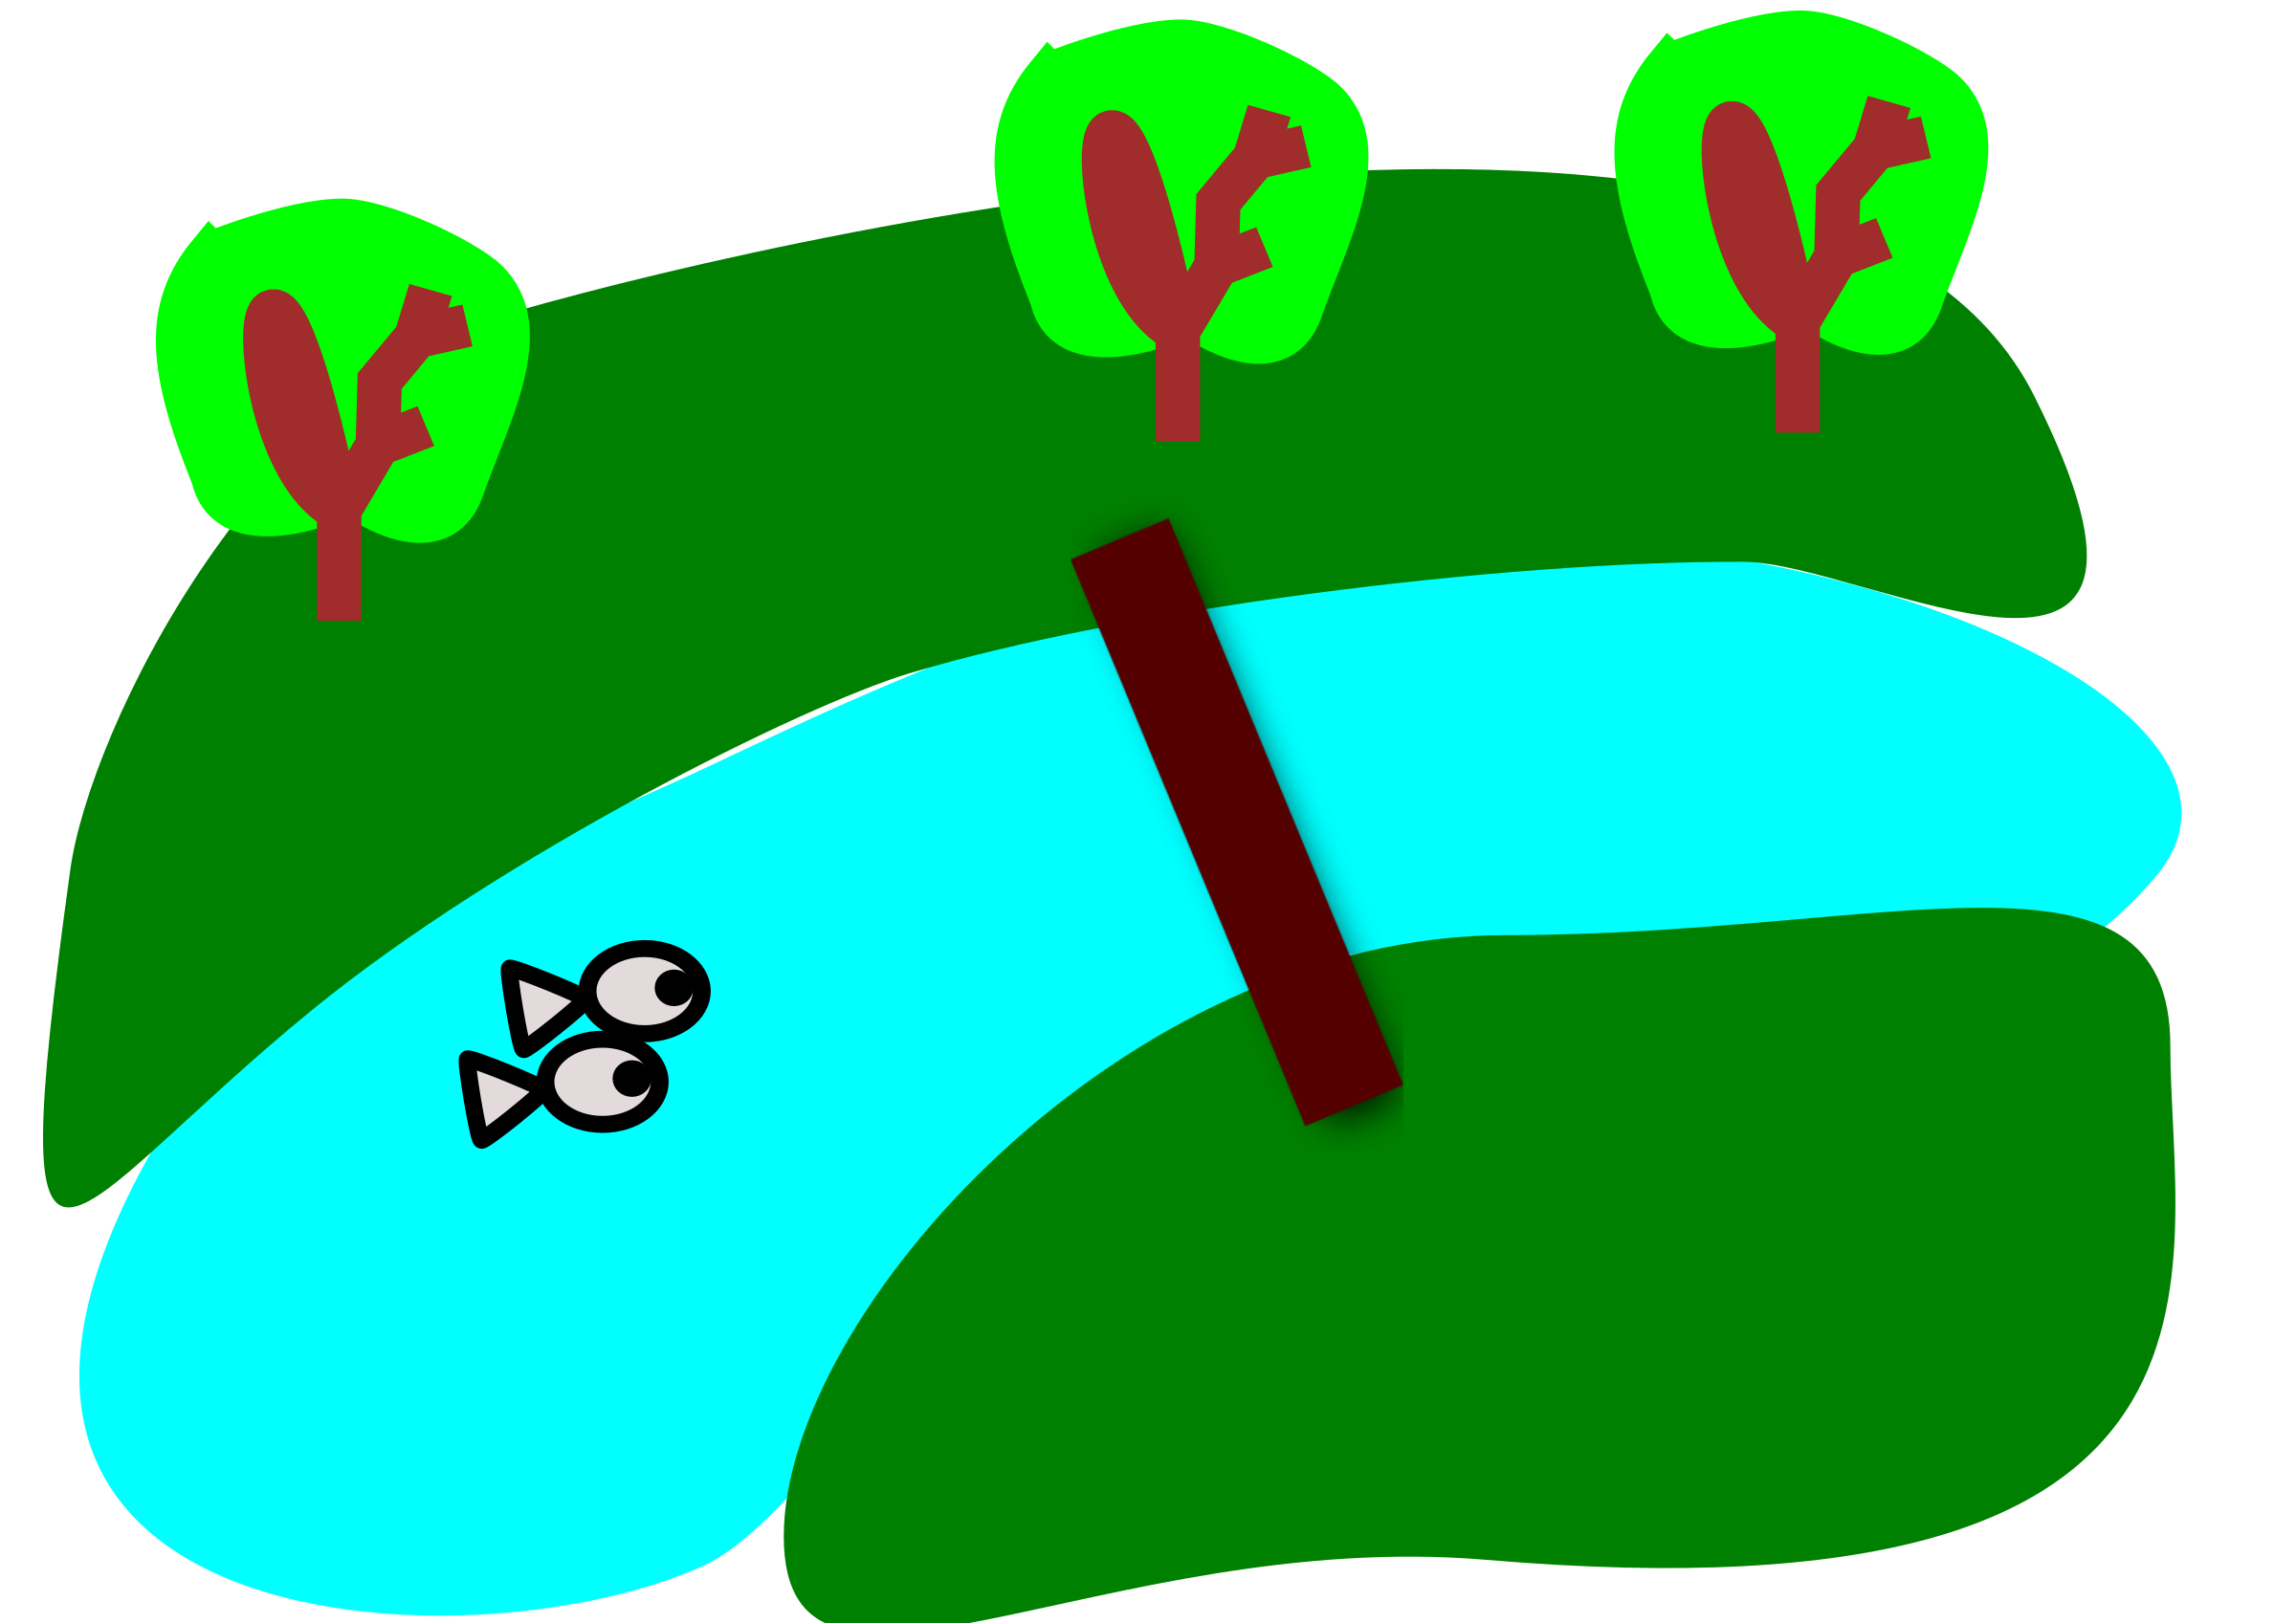 Cartoon river png. Between the green fields